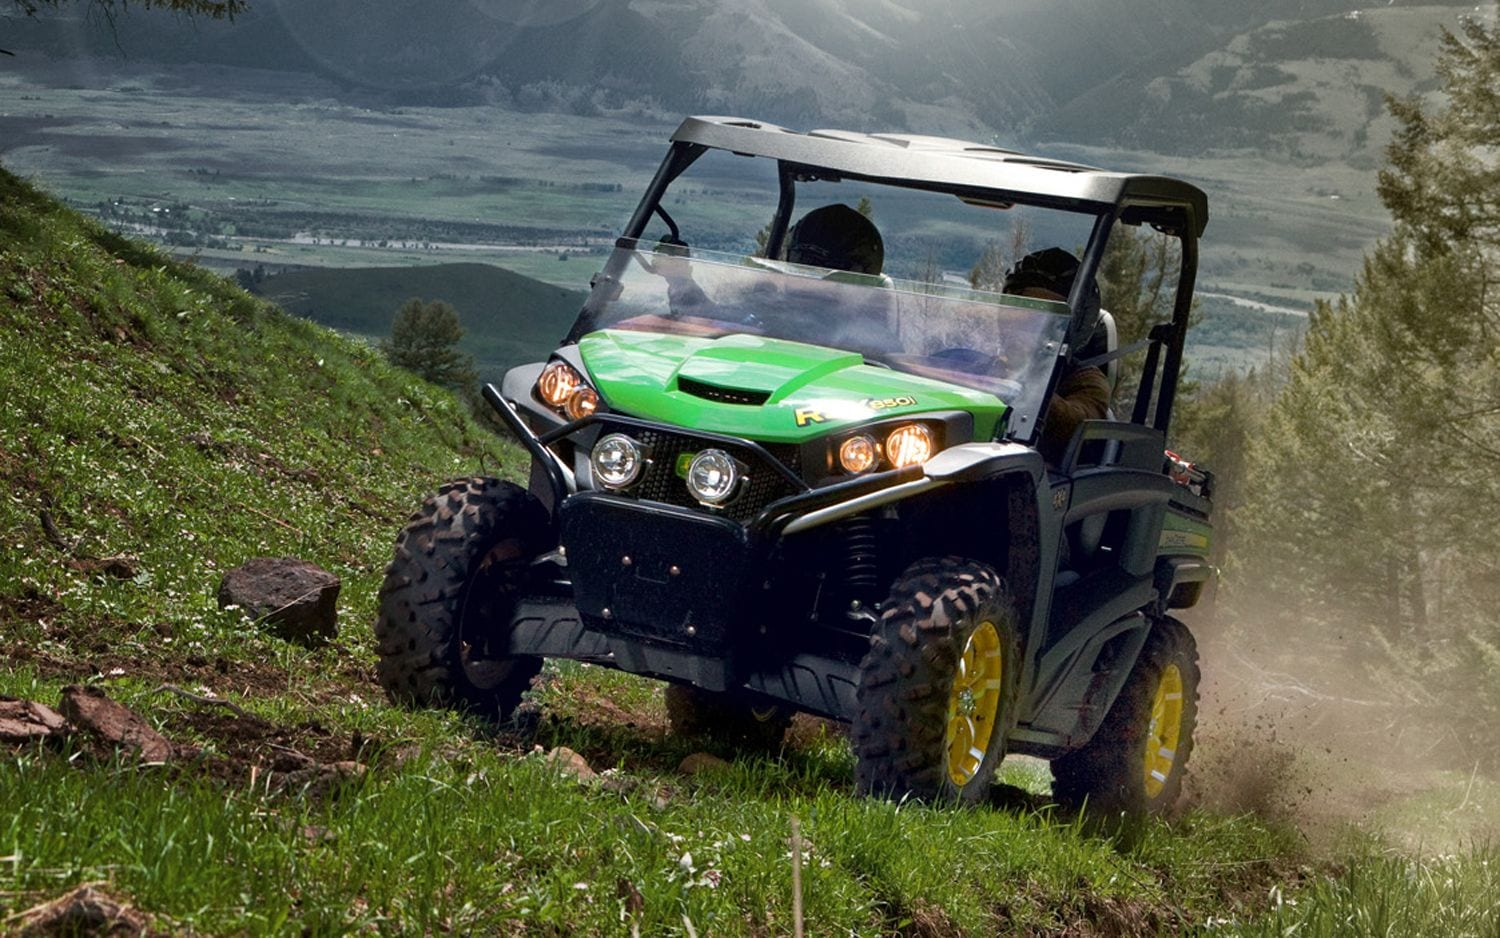 John Deere Gator 590i UTV Throttle Cable Recall Alert